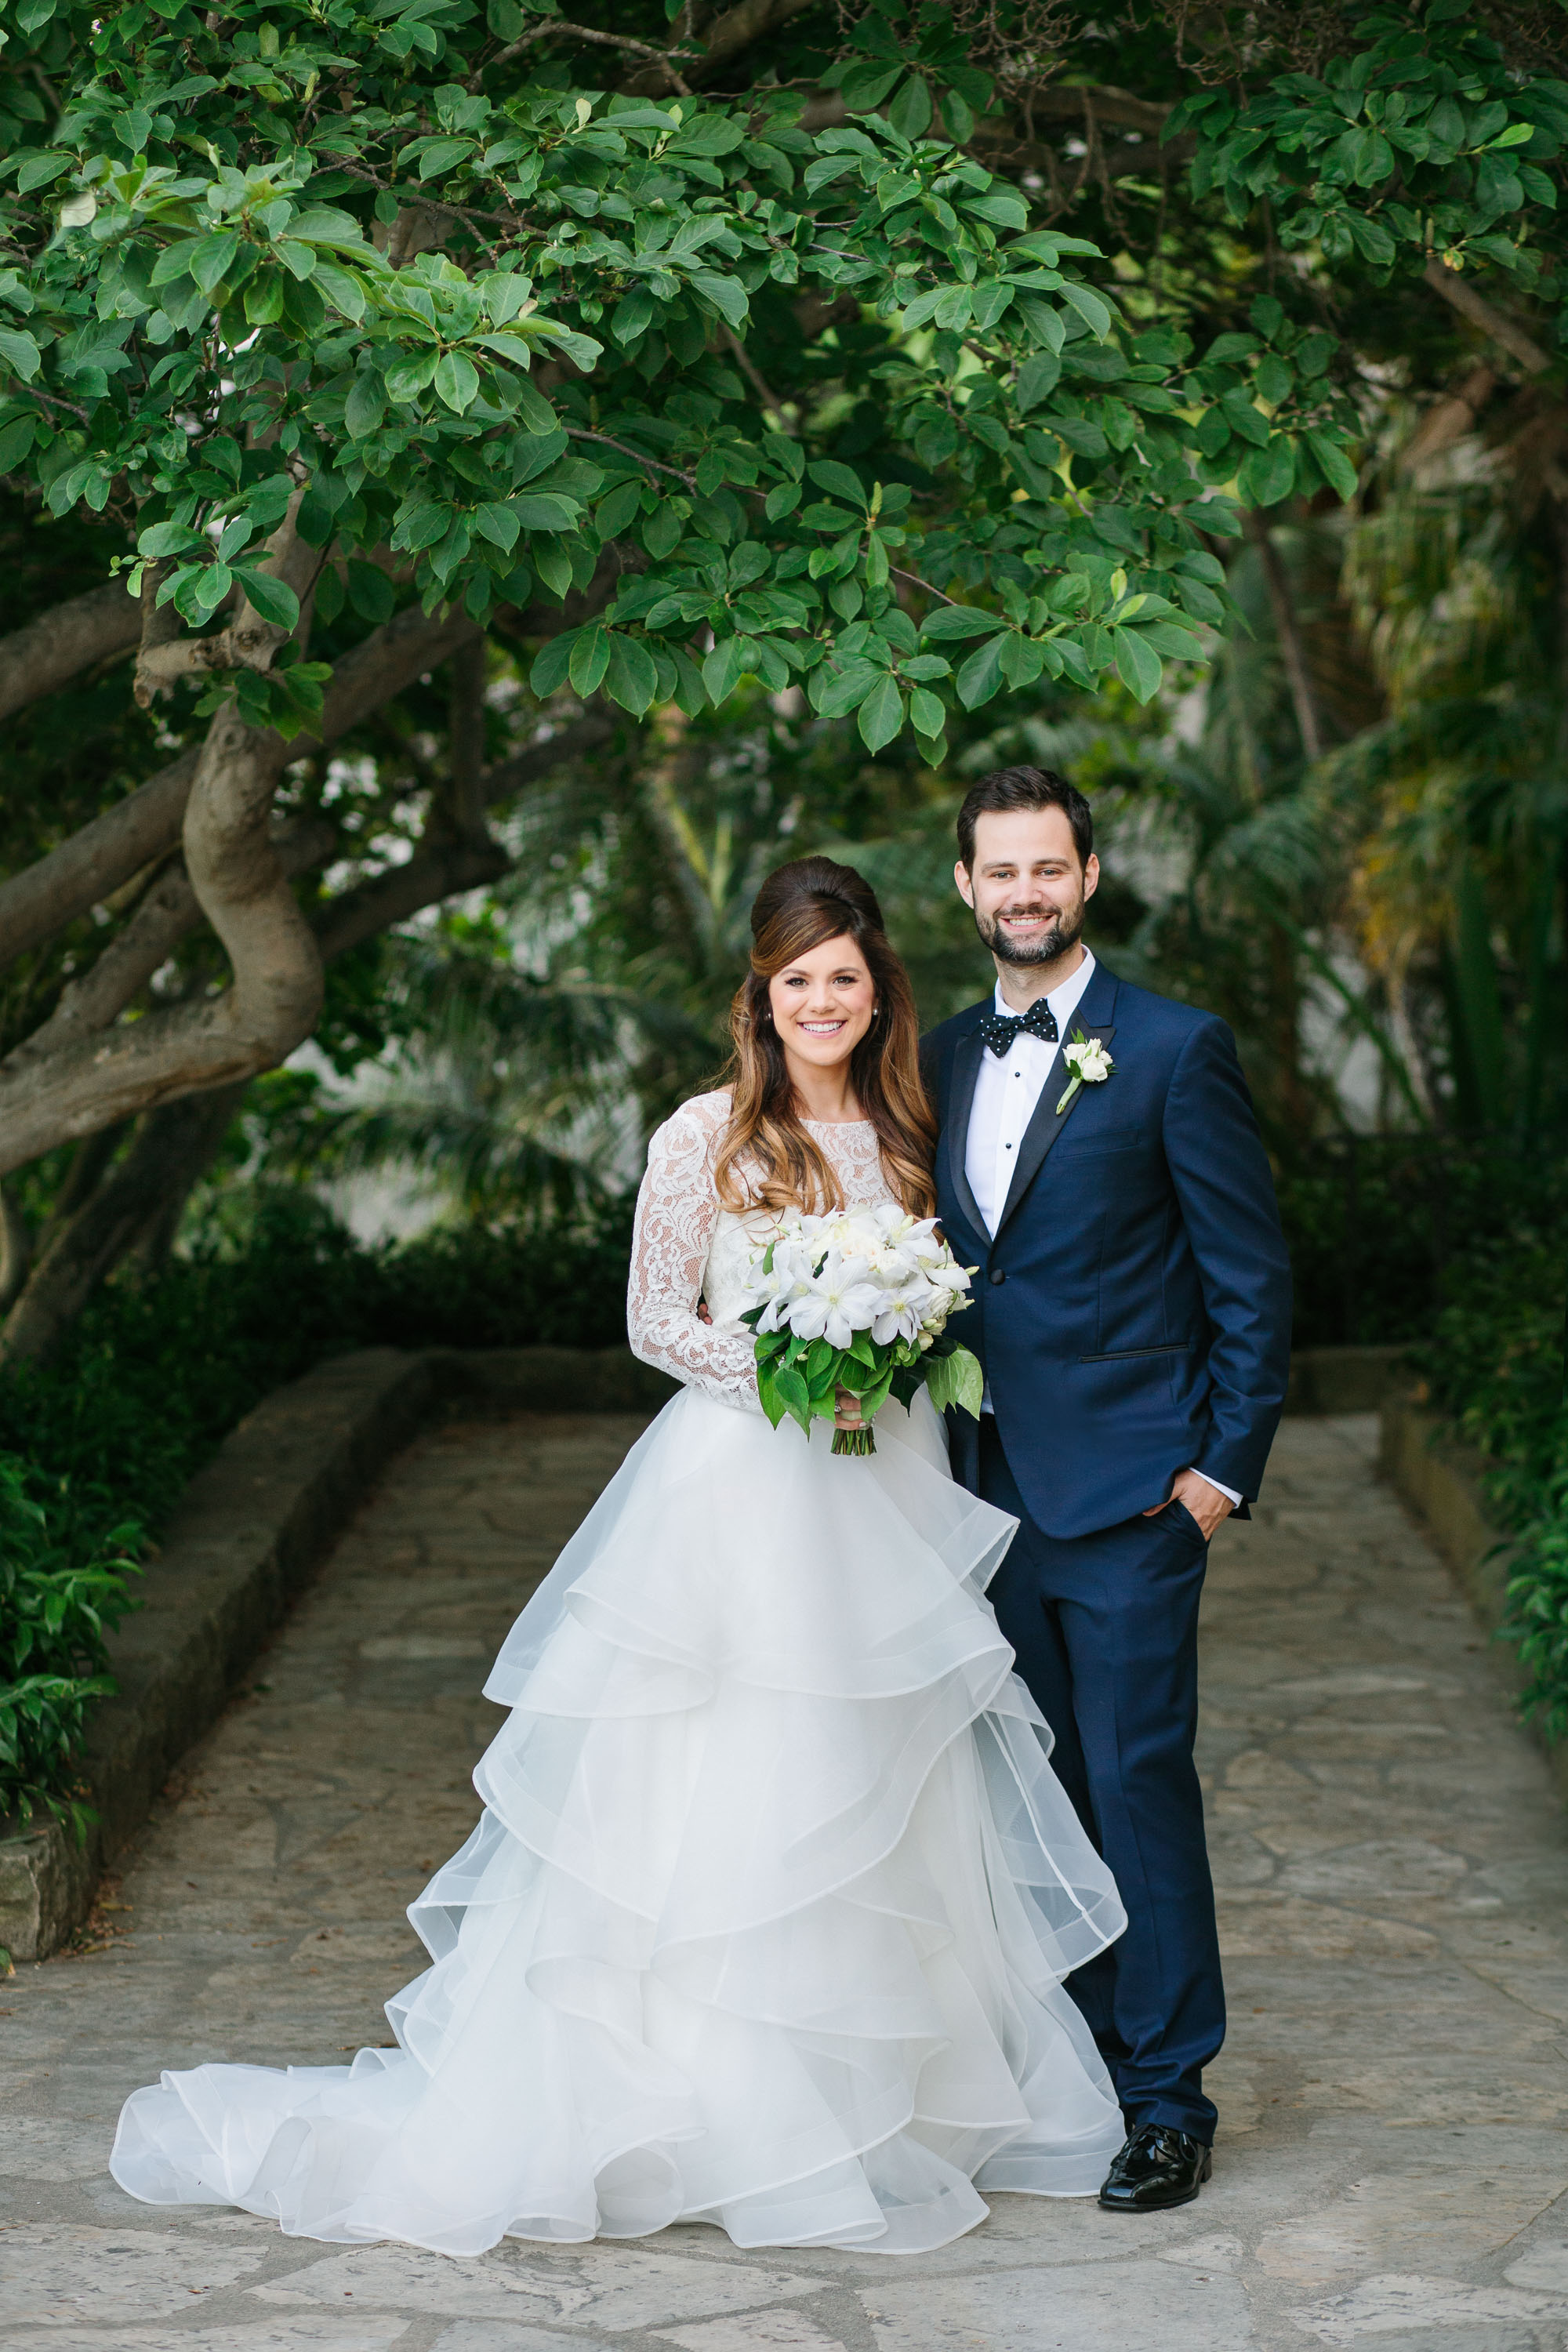 Charlotte & Mark's Wedding in Santa Barbara